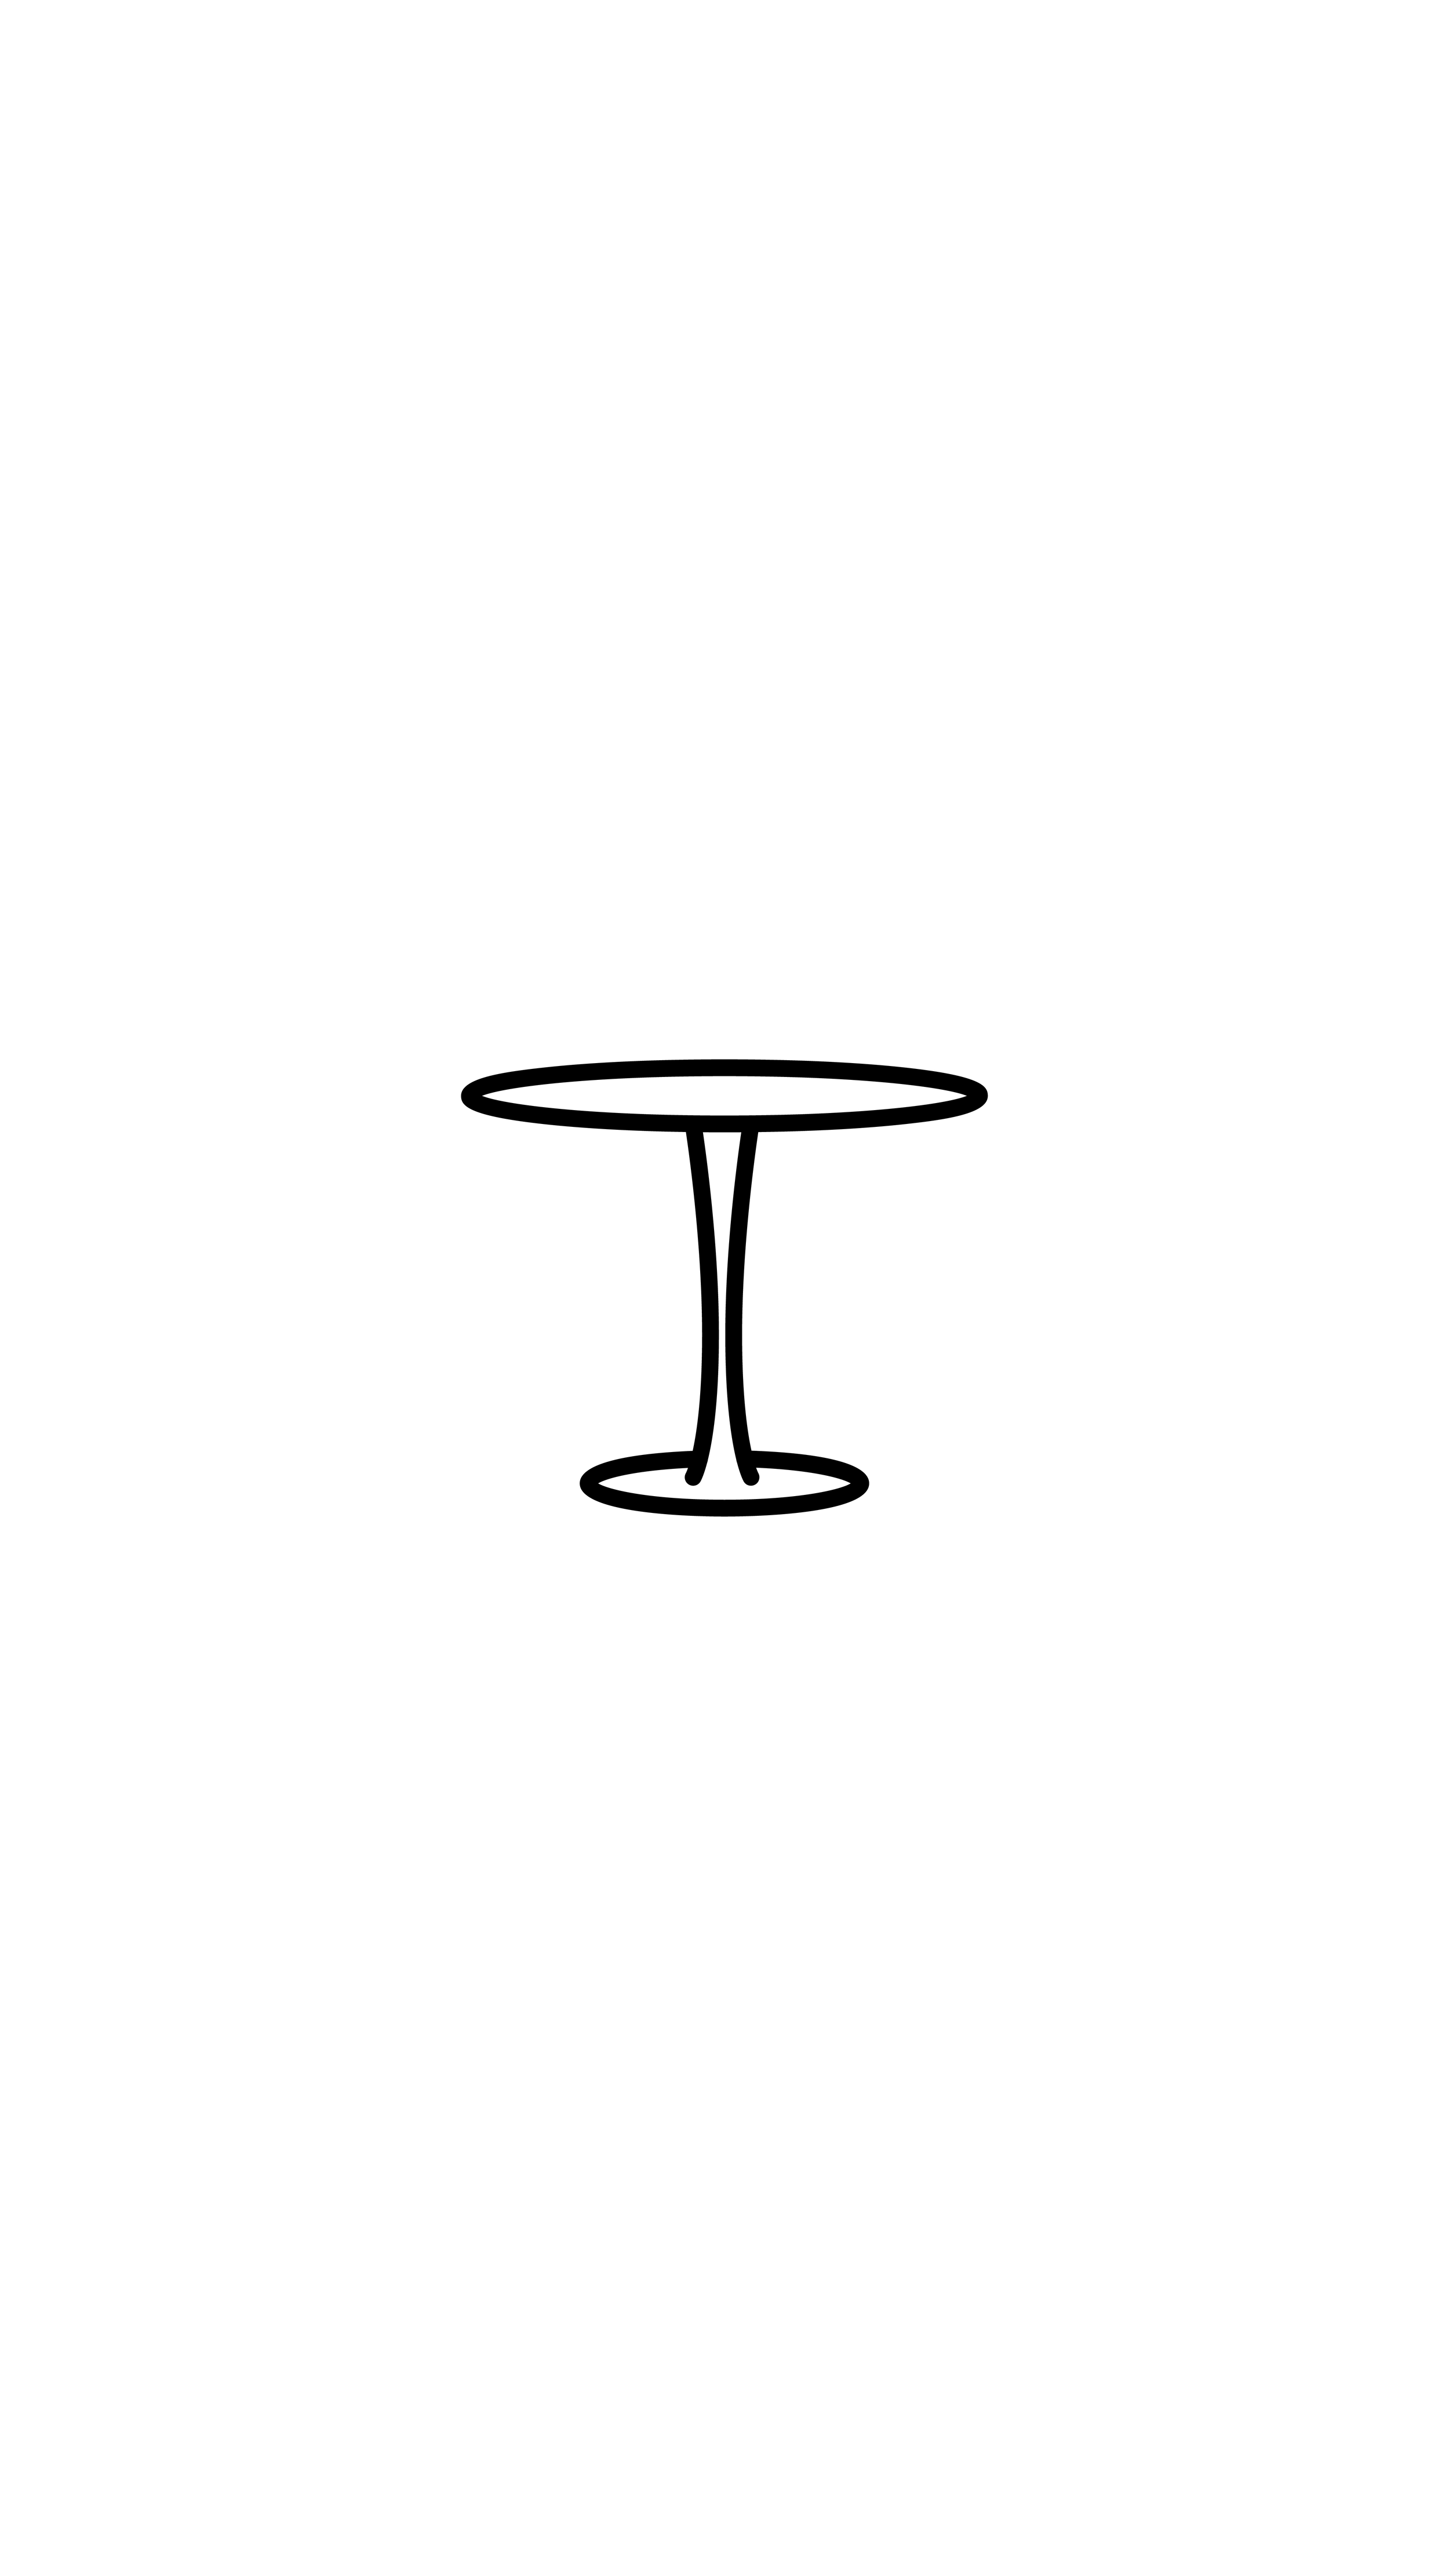 Table, Dining Table, Dining Room